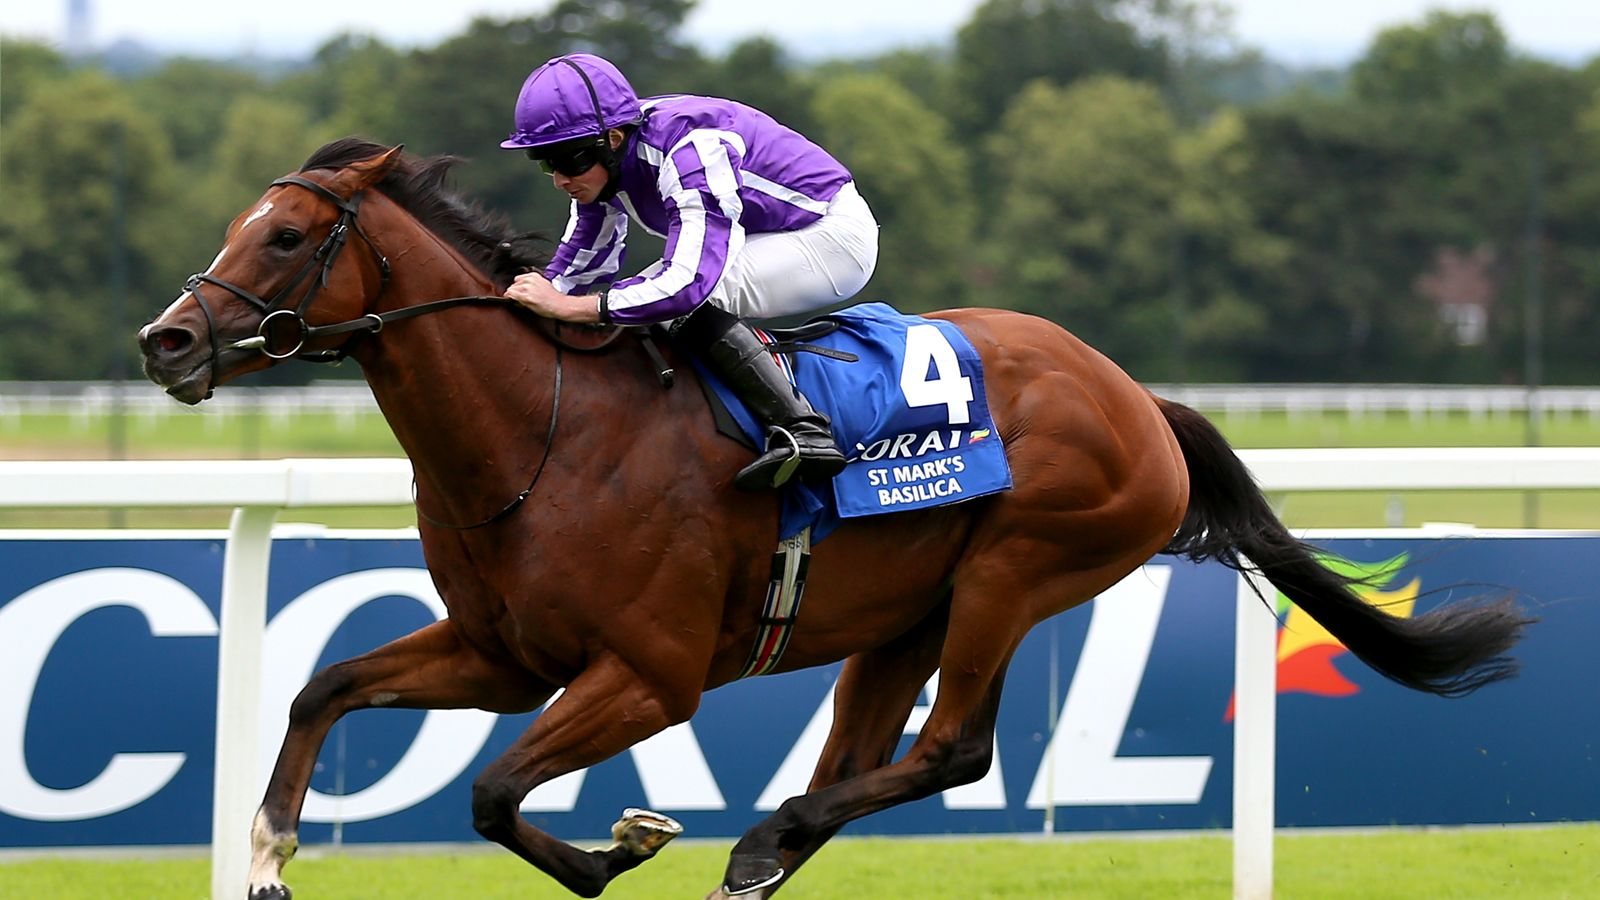 St Mark's Basilica retired: Aidan O'Brien hails three-year-old one of best ever as star heads to stud